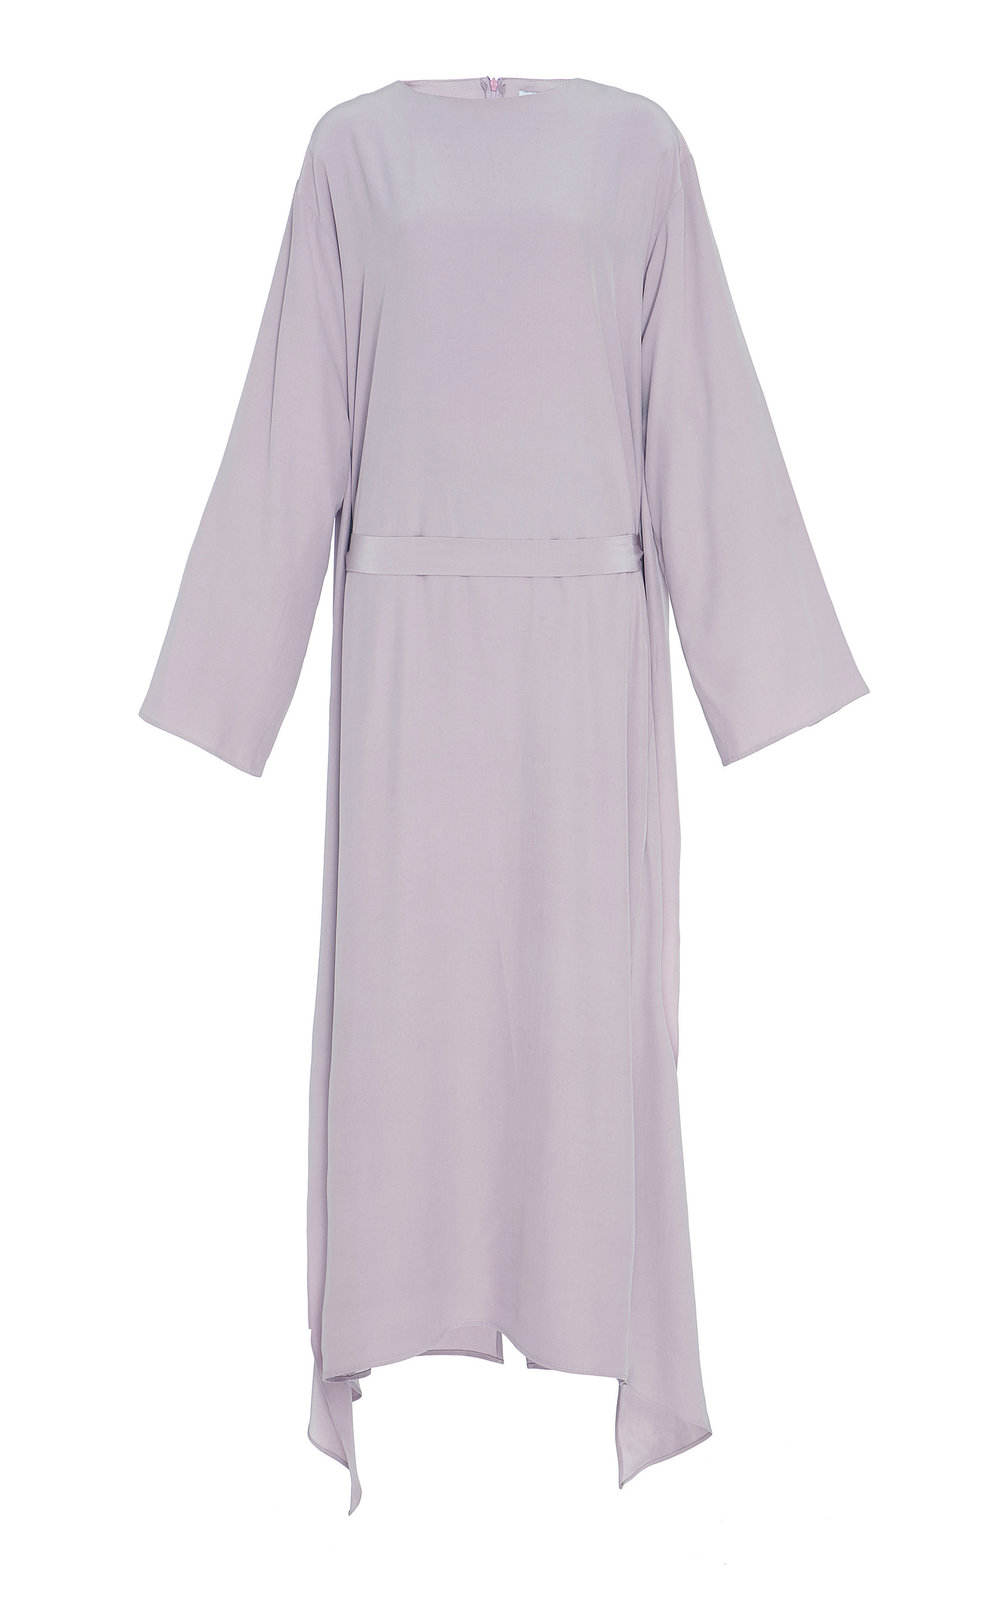 Annabelle Silk-Satin Layered Dress - ORCHID  A light-weight silk dress, with double-layered back and dropped shoulders. The subtle flared cut and wide sleeves create an effortlessly elegant look. Soft matching belt to cinch the waistline.